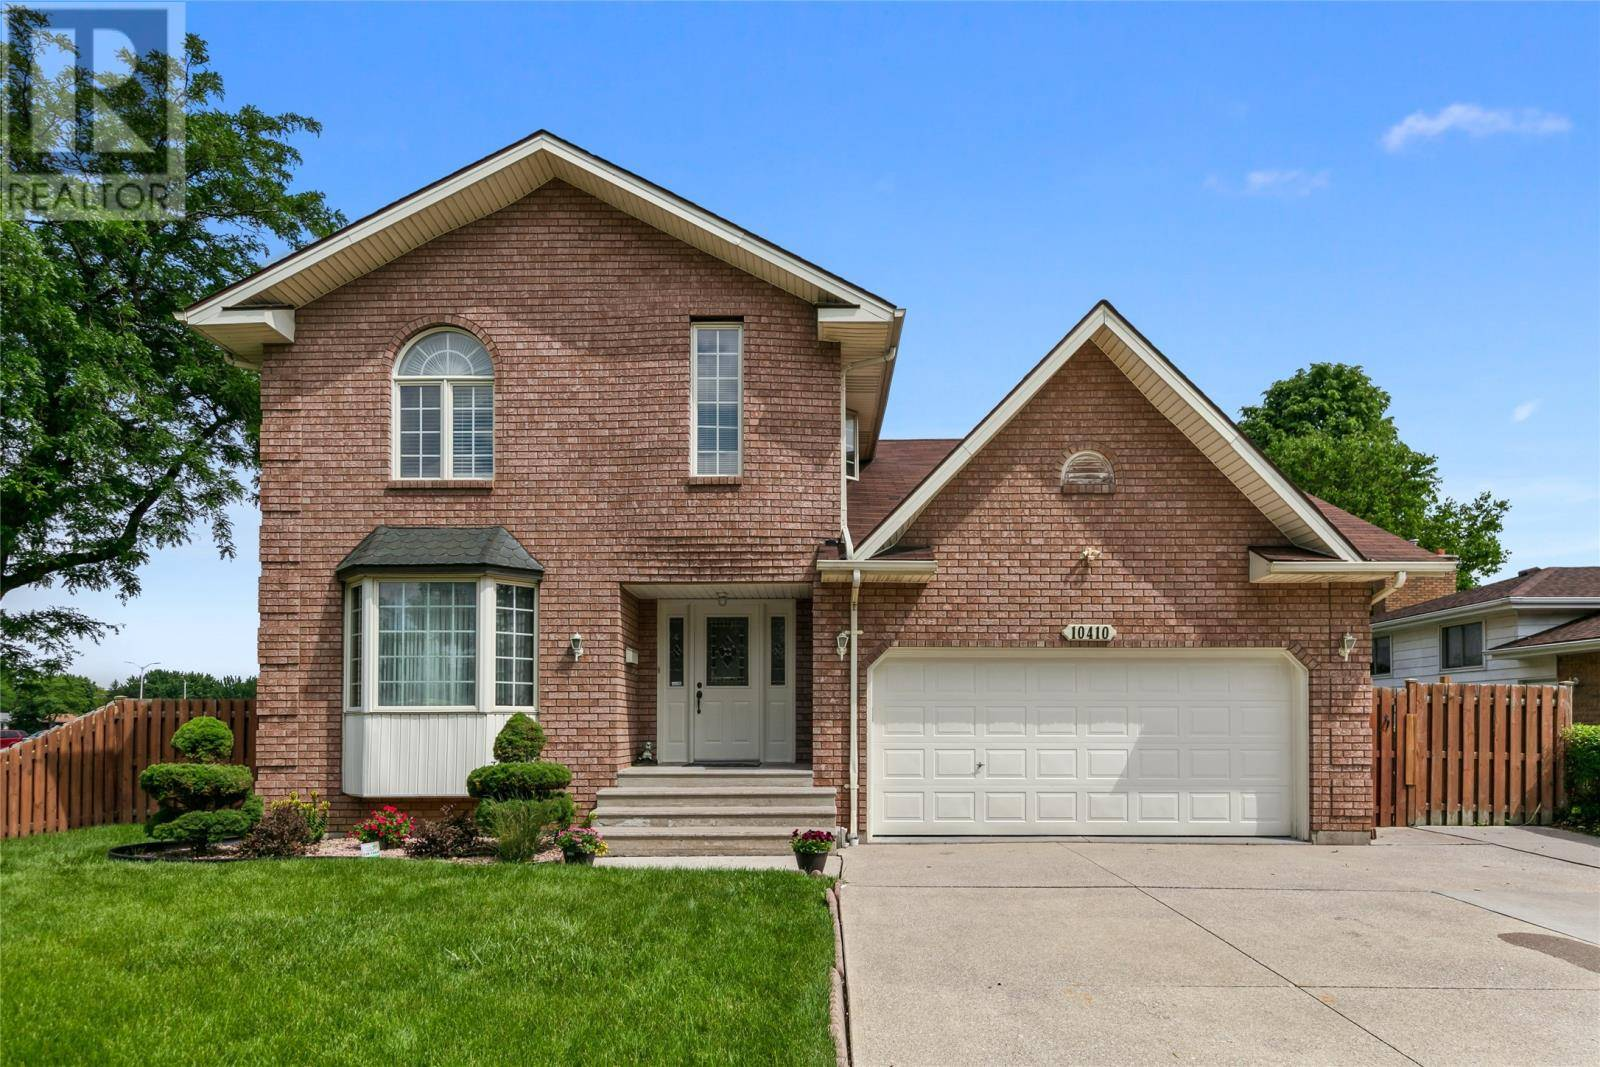 House for sale at 10410 Mulberry  Windsor Ontario - MLS: 19020333